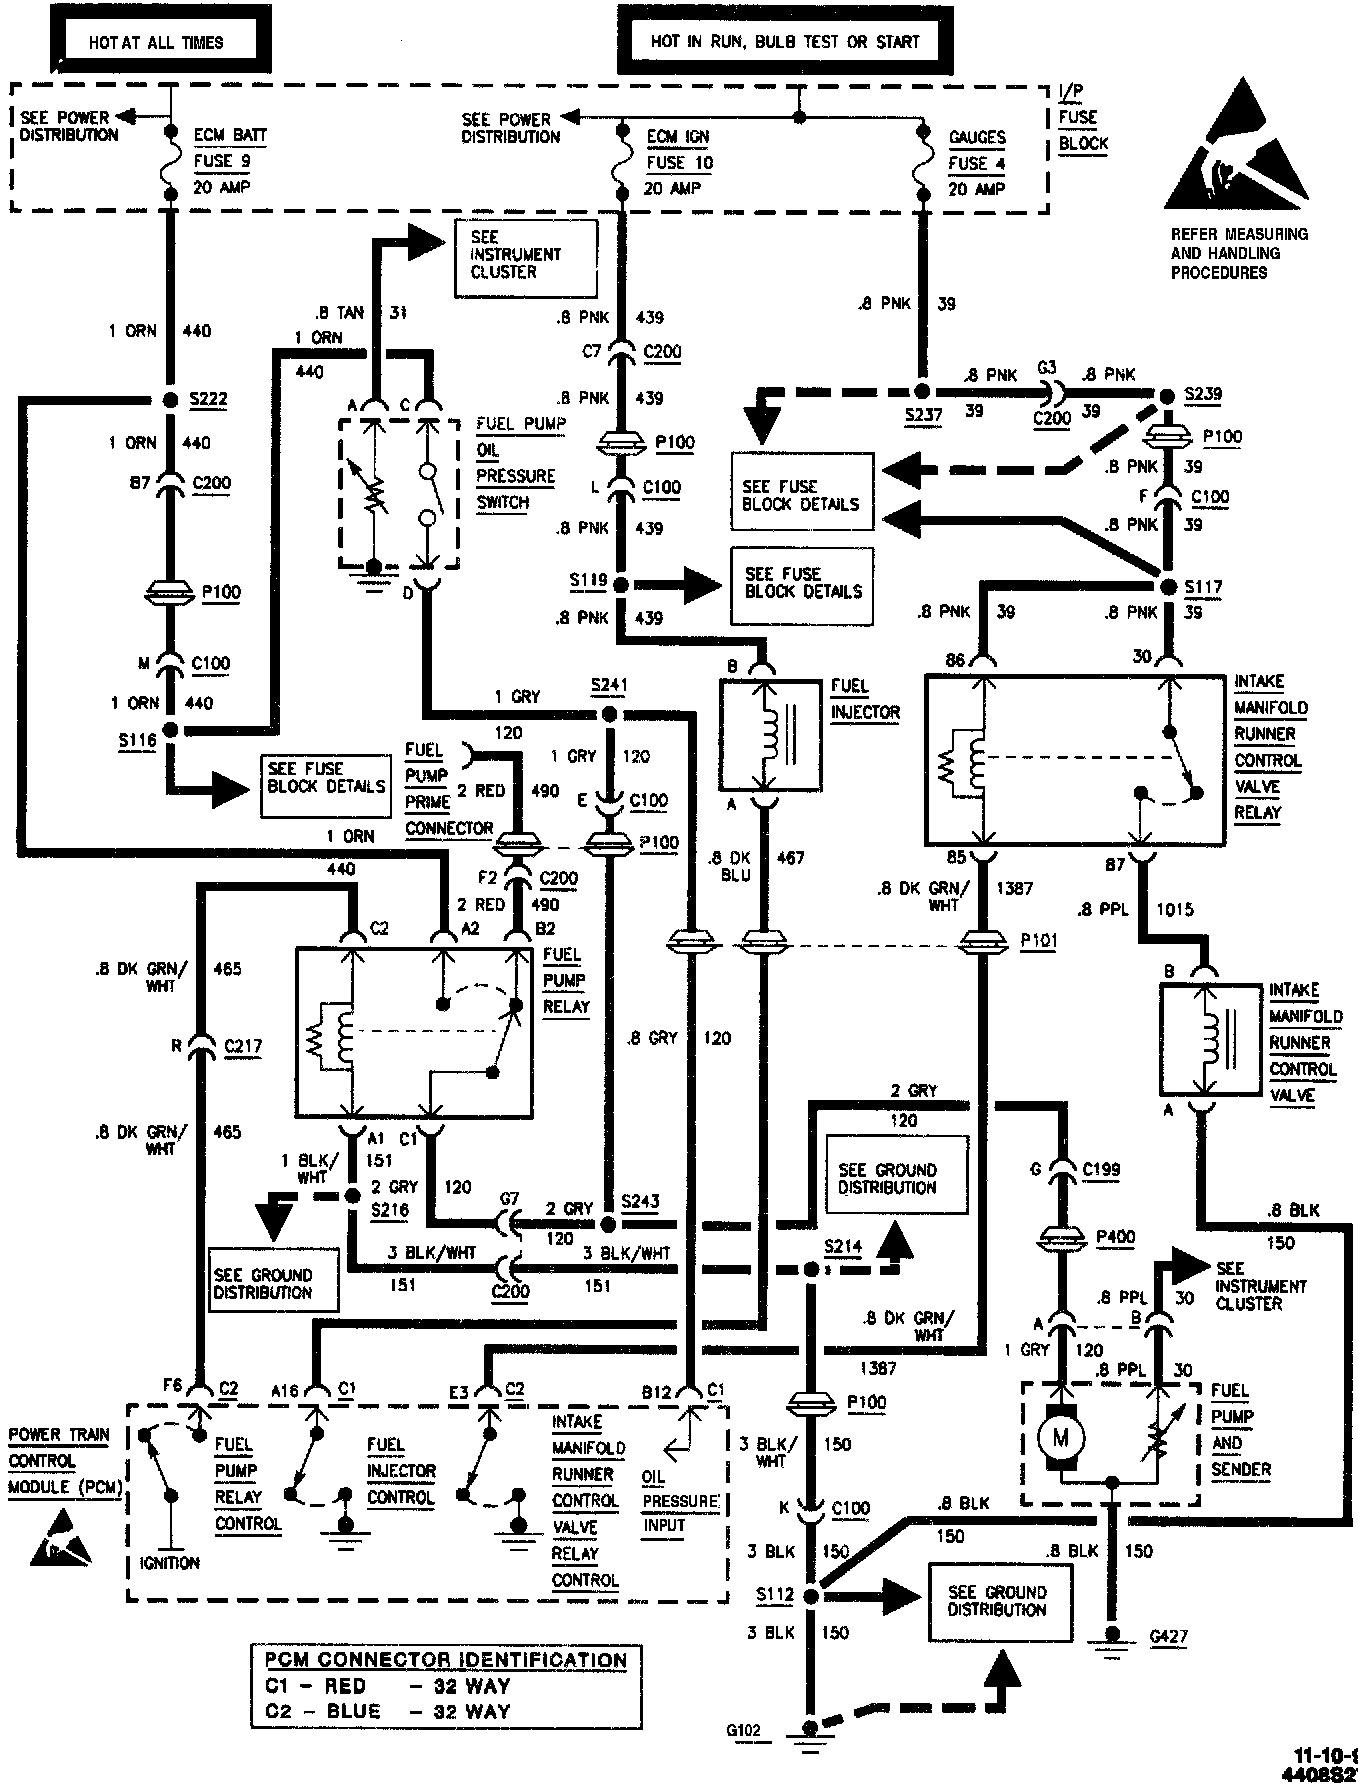 95 Chevy S10 Ignition Wiring Diagram | Wiring Diagram on 95 chevy s10 water pump, 95 ford windstar wiring diagram, chevy truck starter wiring diagram, s 10 truck wiring diagram, 2001 chevy tracker engine wiring diagram, 95 s10 2.2 engine diagram, 95 mitsubishi eclipse wiring diagram, 95 chevy lumina wiring diagram, 1998 chevy blazer vacuum line diagram, pyramid radio wiring diagram, 95 chevy s10 problems, 2004 colorado wiring diagram, 95 toyota tacoma wiring diagram, 95 hyundai accent wiring diagram, 95 chevy s10 fuel pump relay location, 95 chevy s10 manual, 2003 chevy 2.2l engine diagram, 1995 chevy s10 engine diagram, 95 chevy corsica wiring diagram, 95 chevy wiring harness diagram,